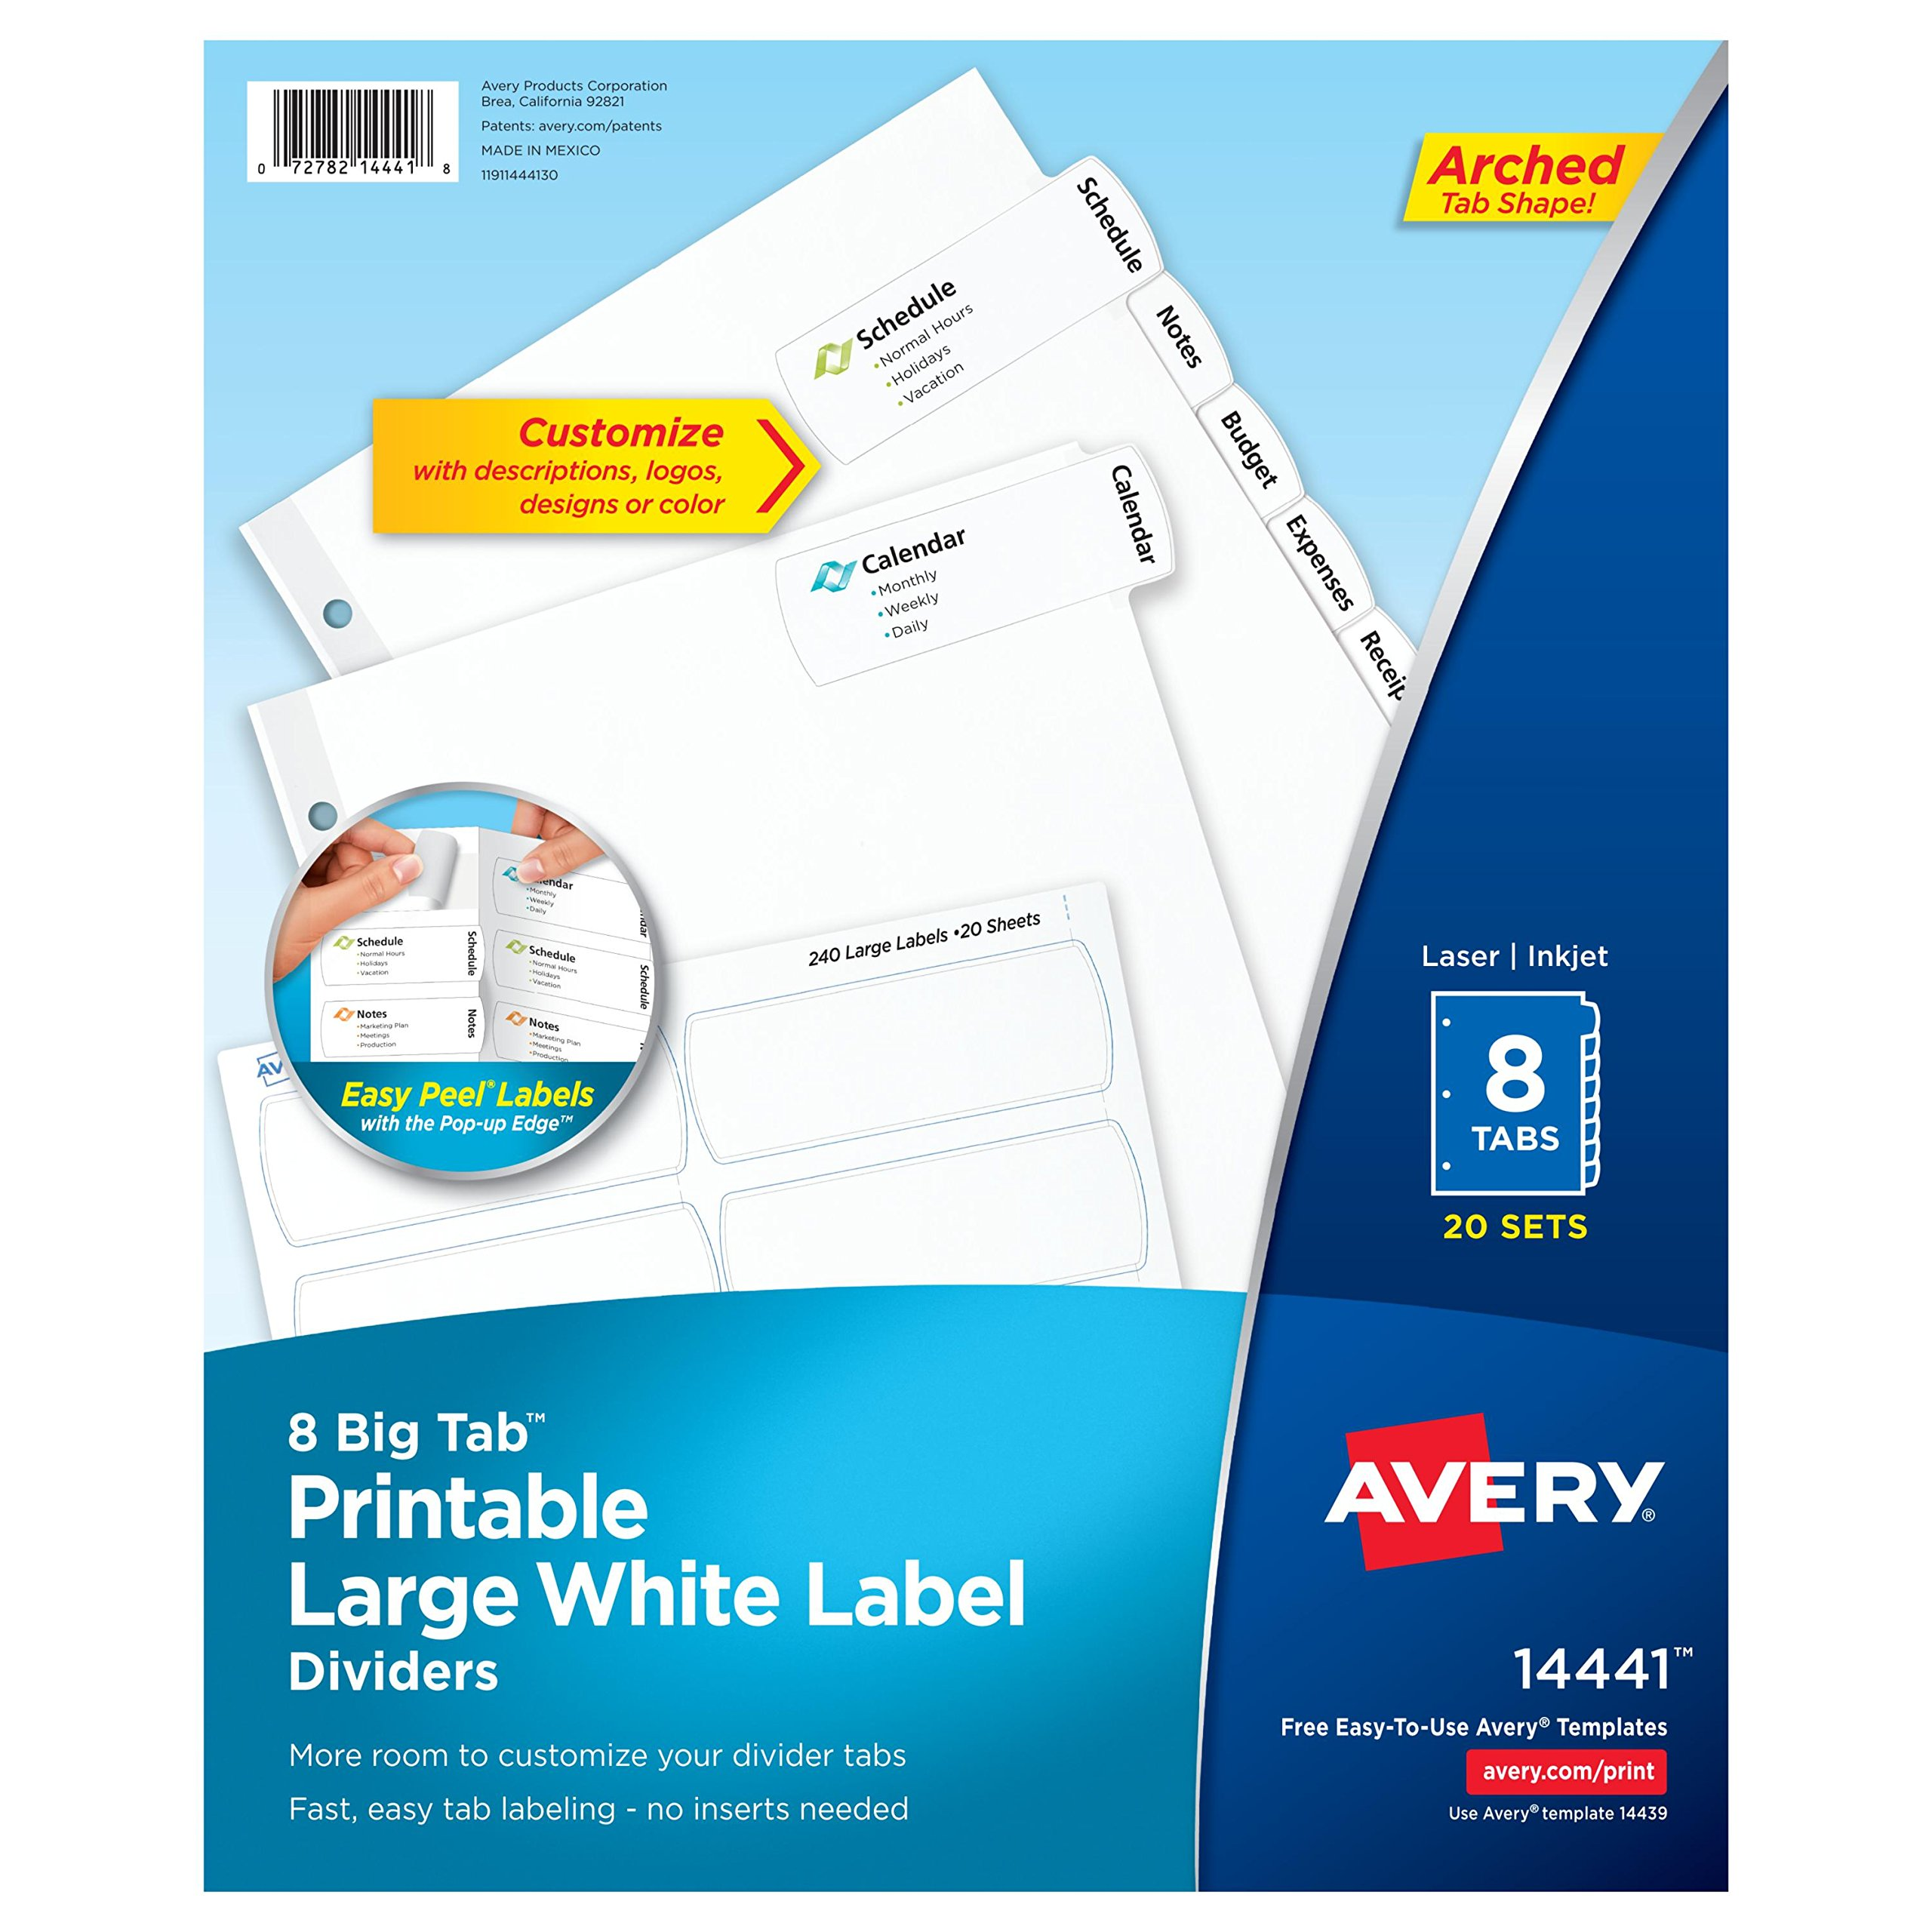 Avery Big Tab Printable Large White Label Dividers with Easy Peel, 8 Tabs, 20 Sets (14441)